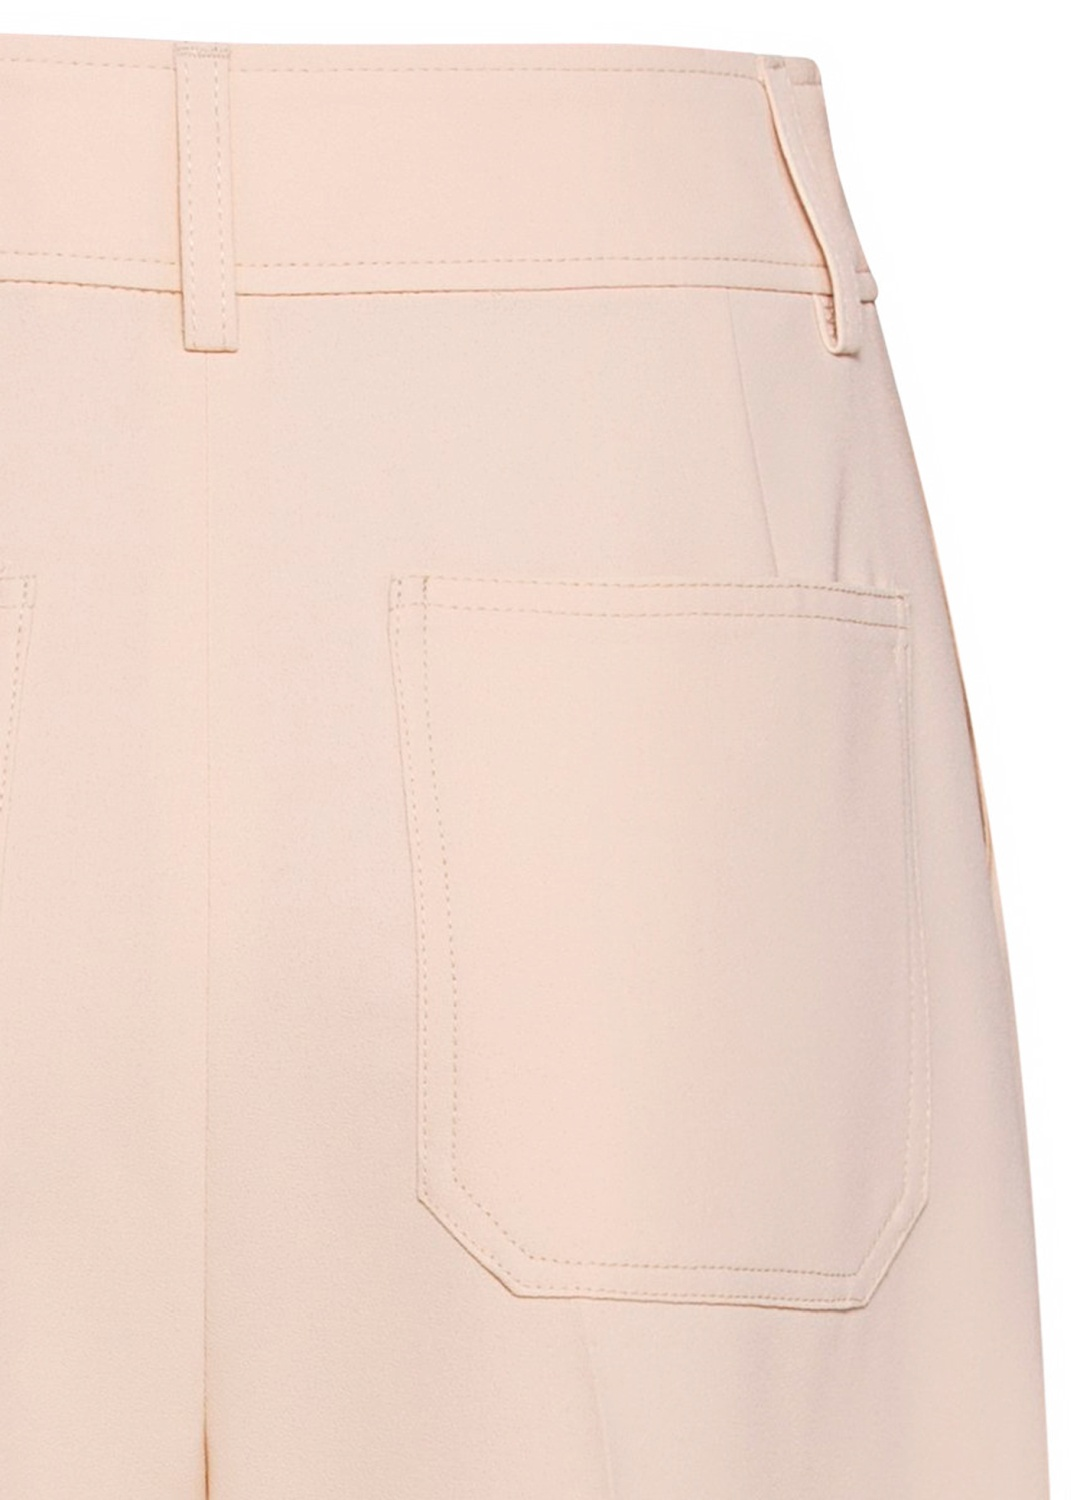 TROUSERS image number 3